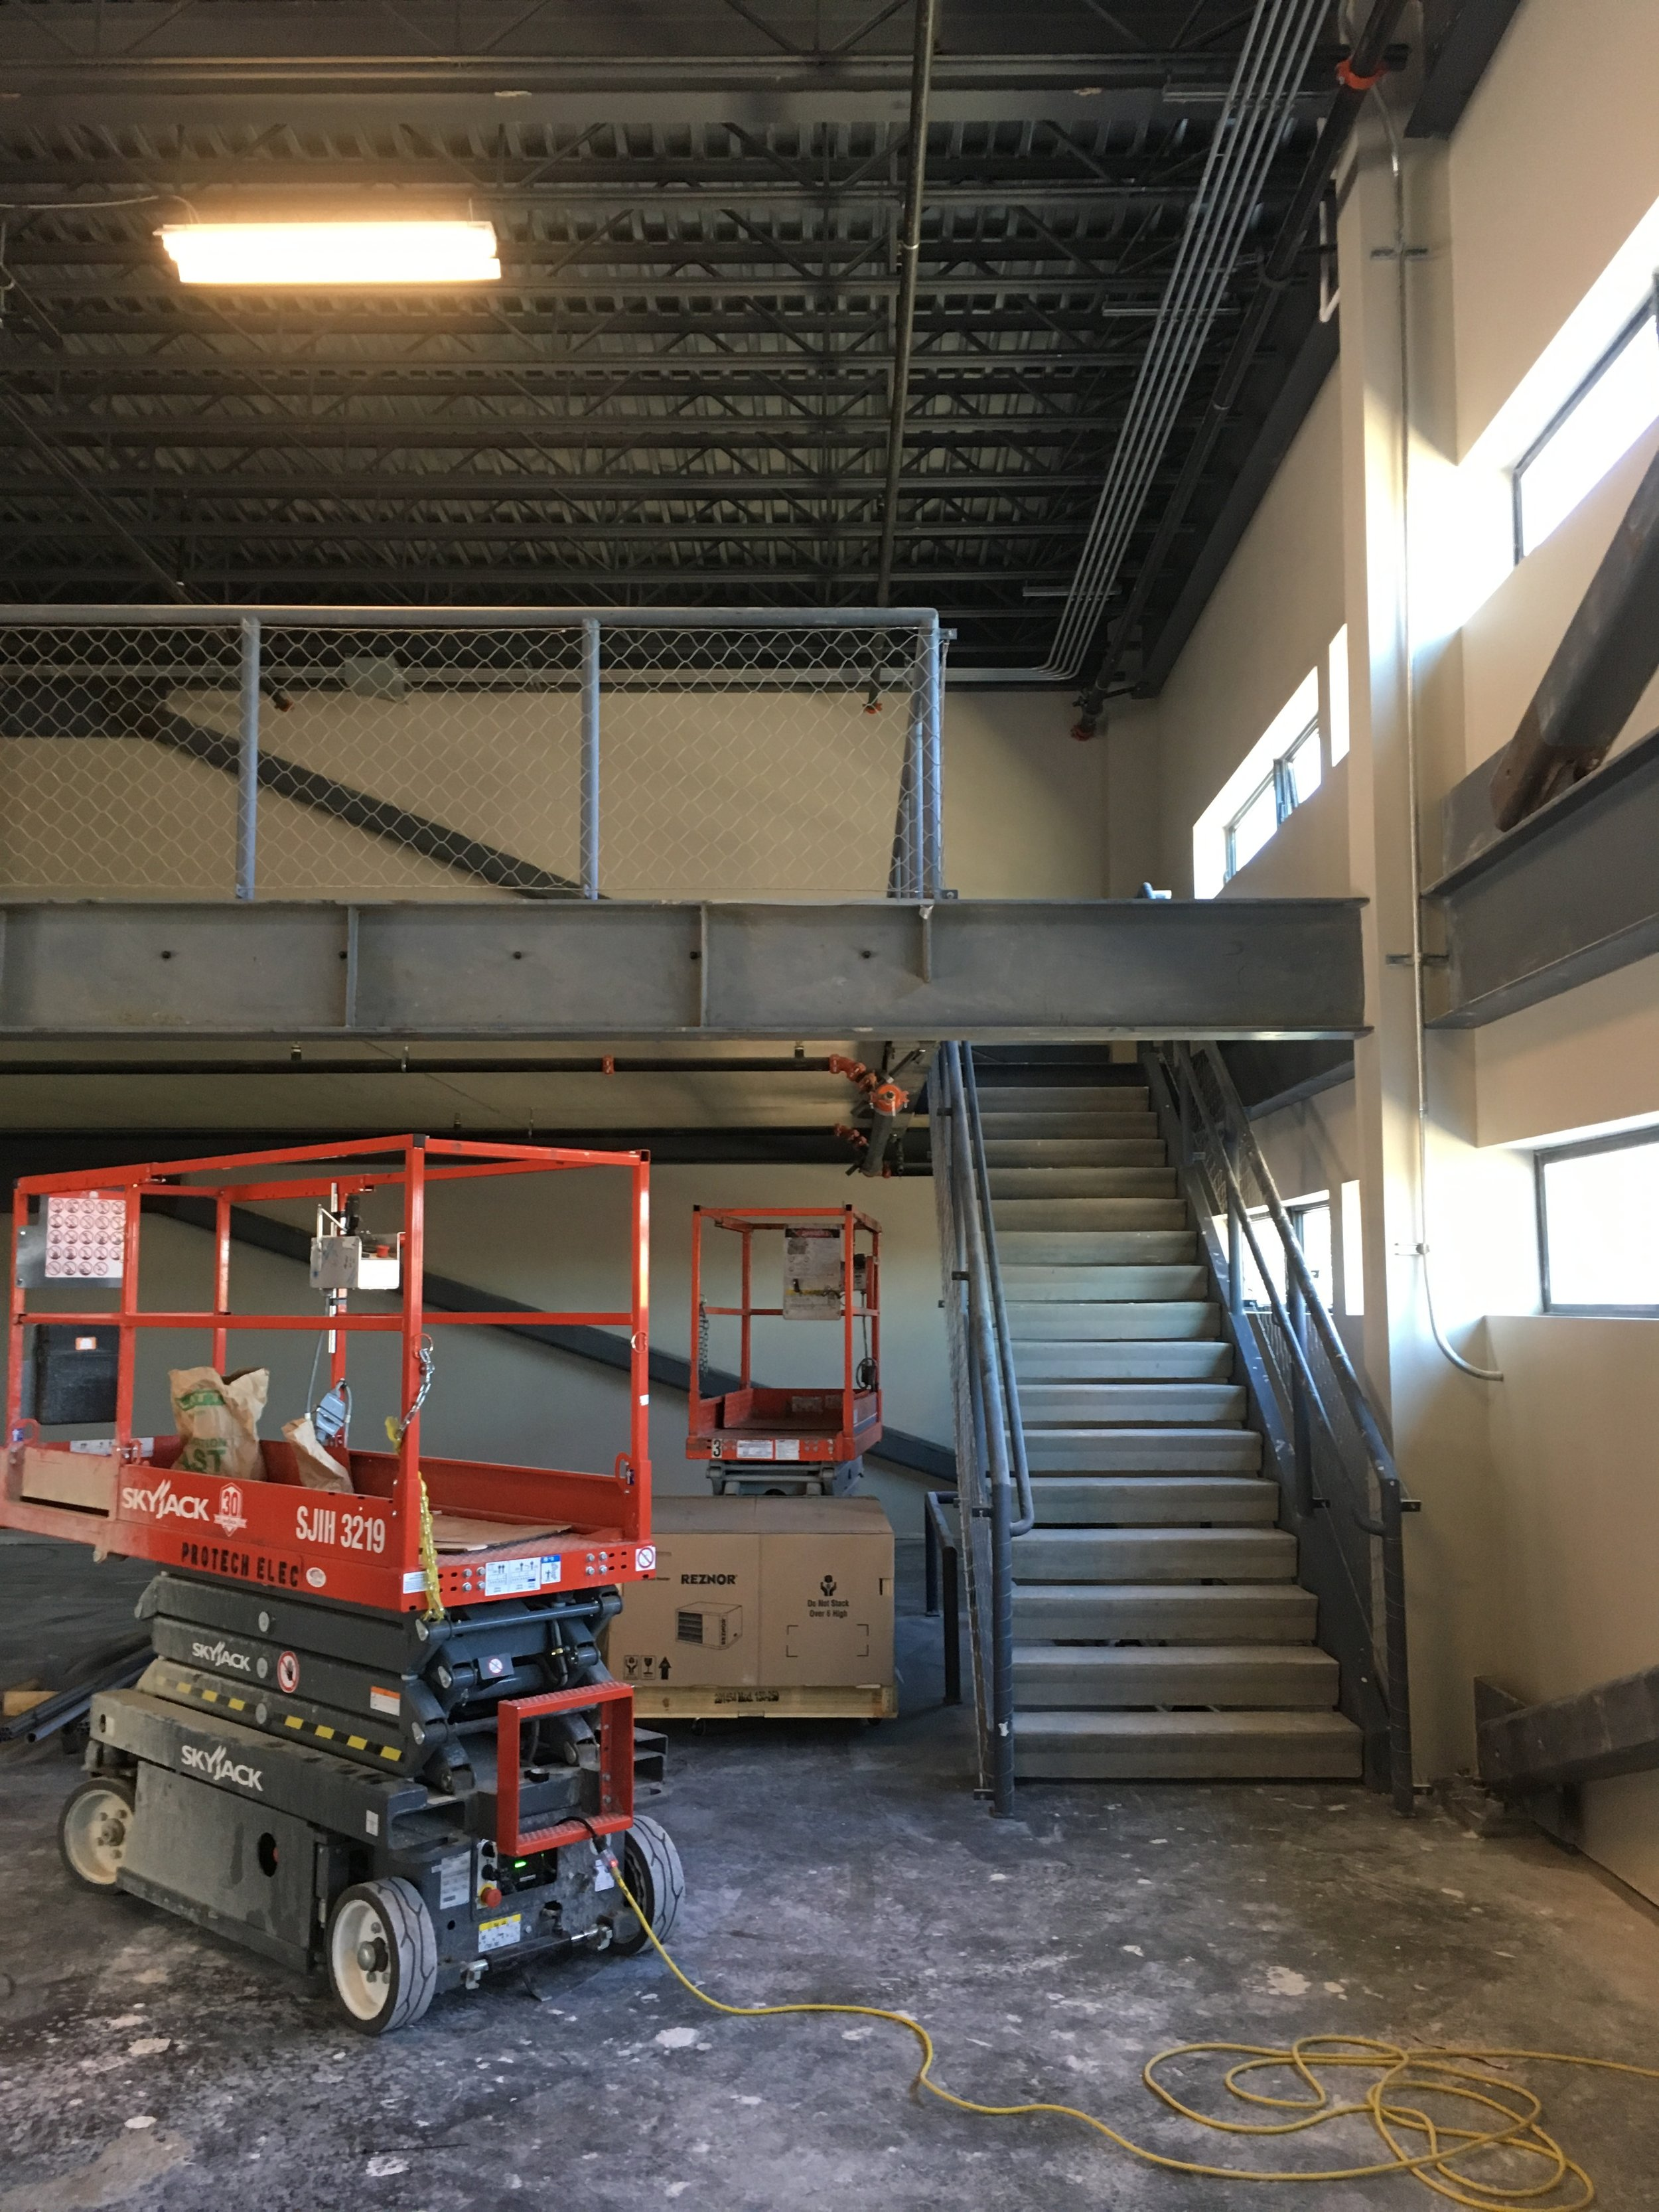 In progress T-I, including CLT mezzanine, stair construction, stainless steel mesh guardrail.